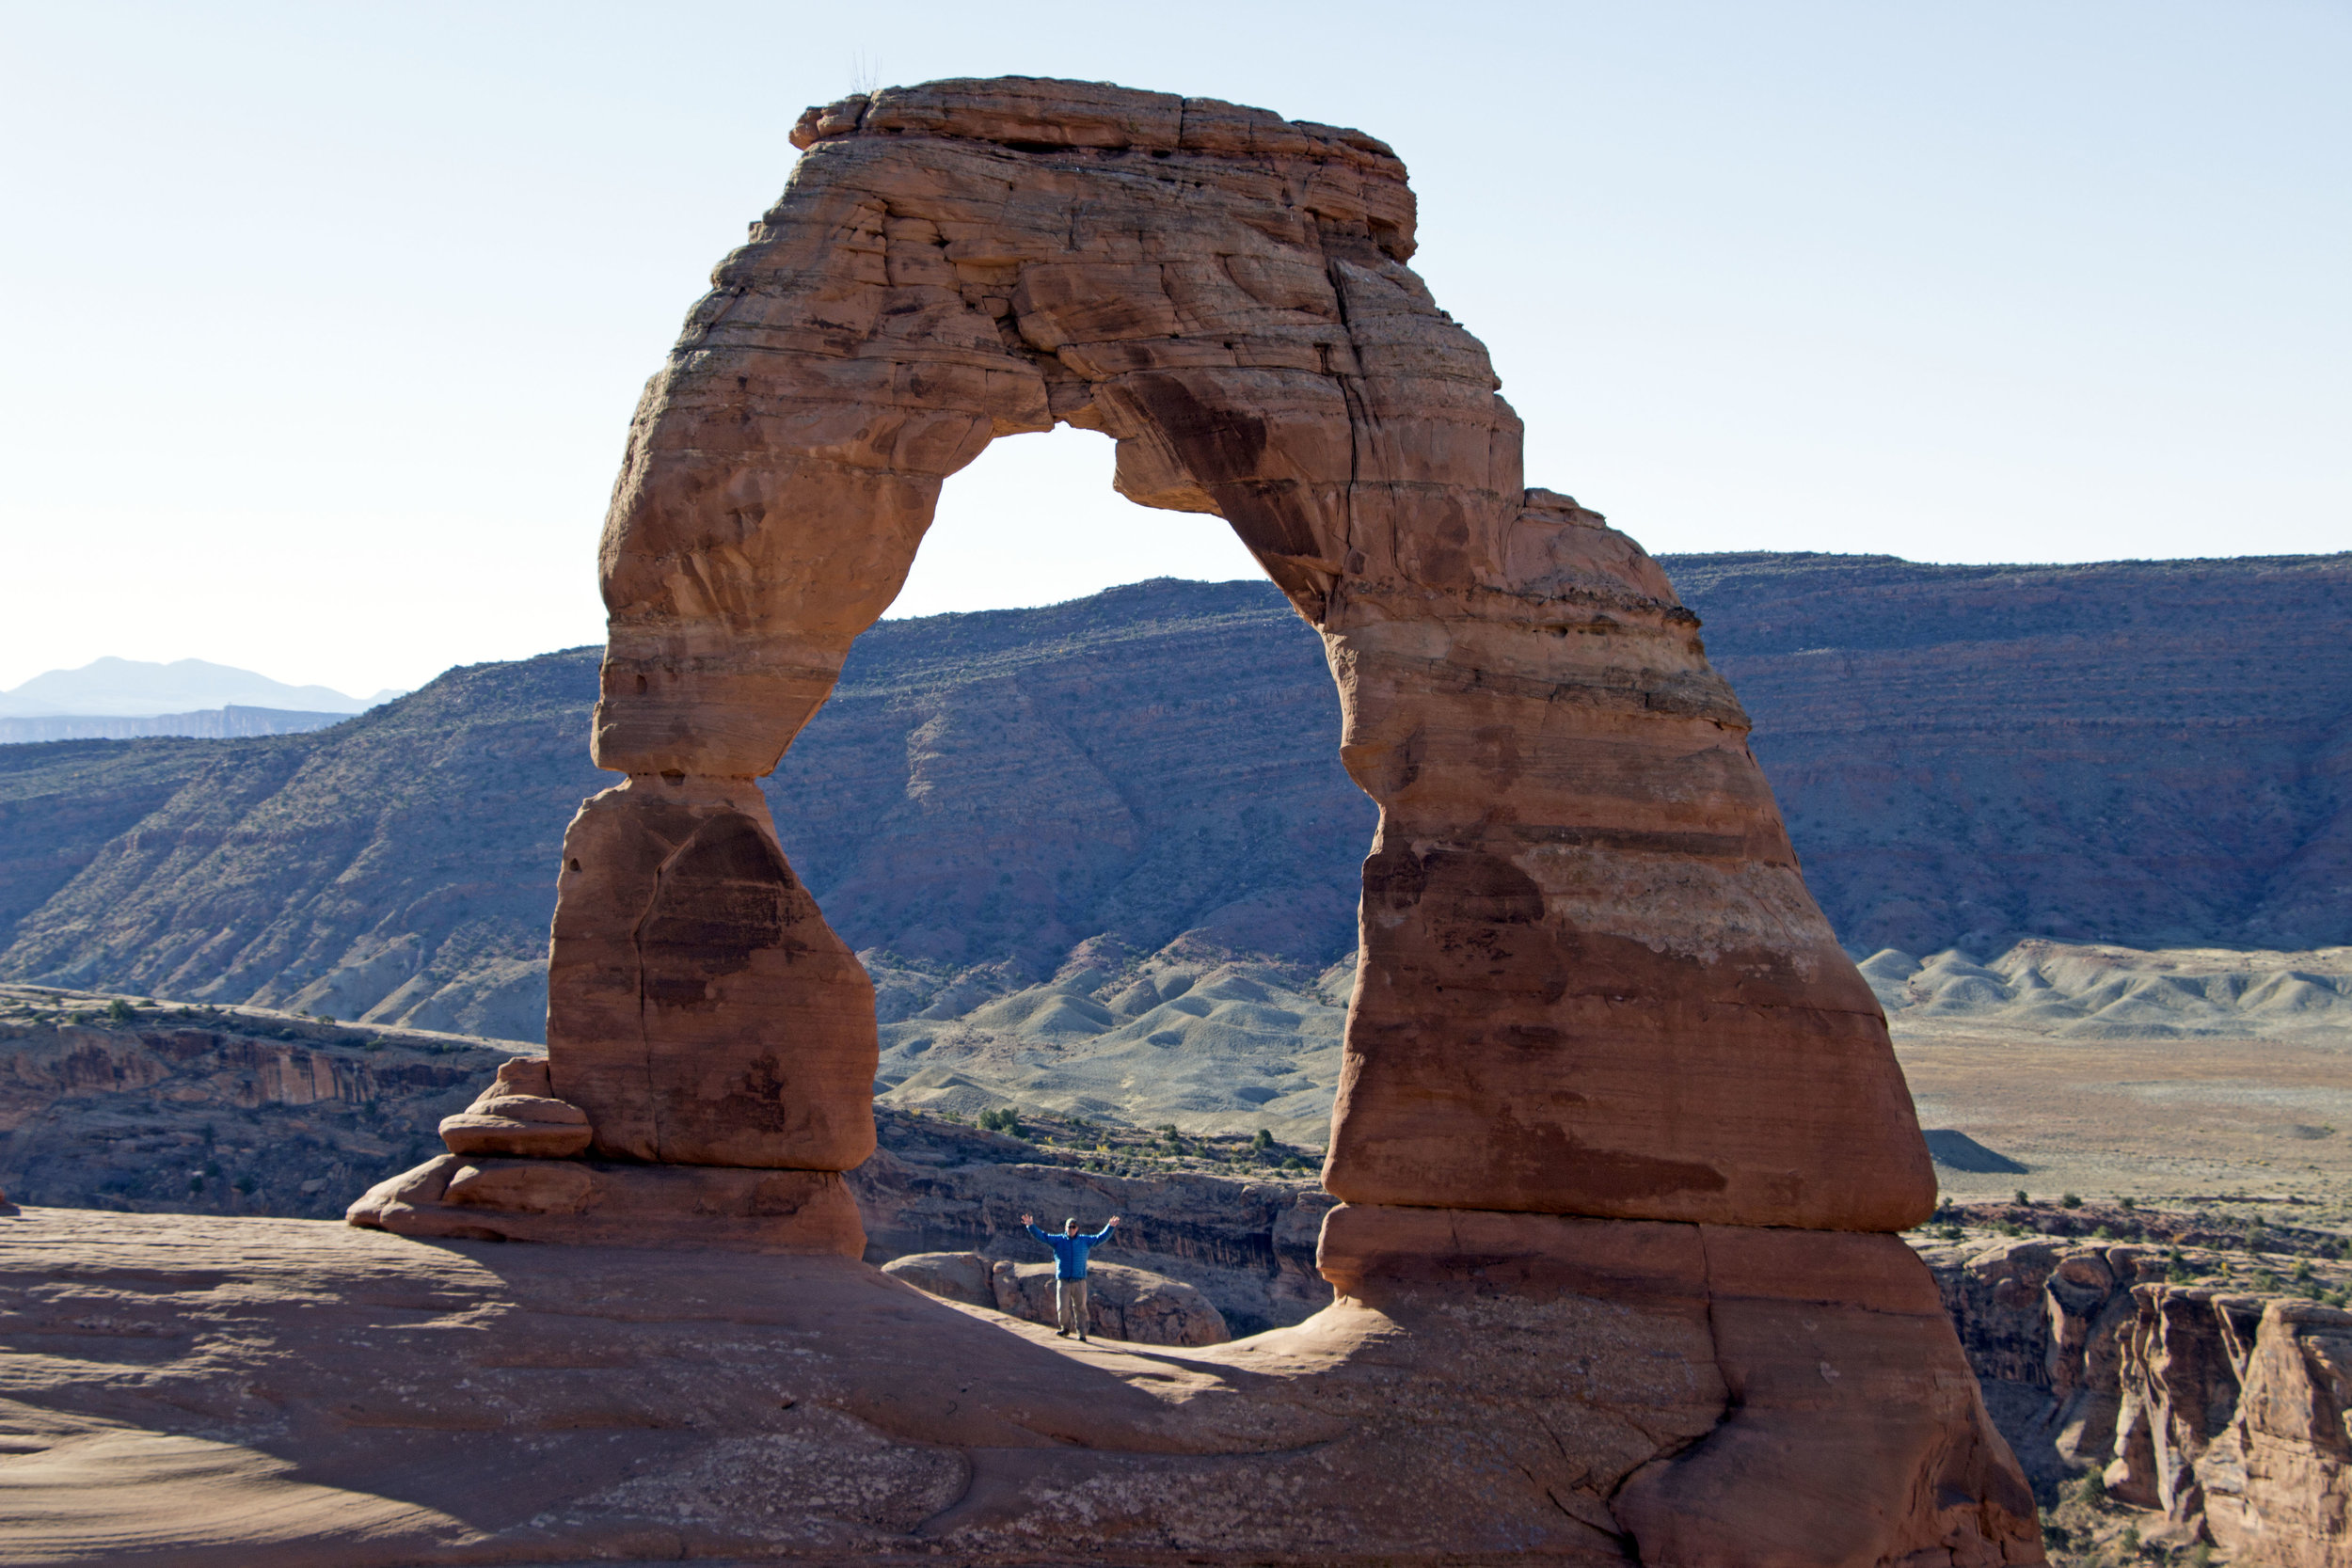 It wasn't very crowded in Arches during our Mid-October trip. We didn't have to wait long for our own photo ops with the Arch.